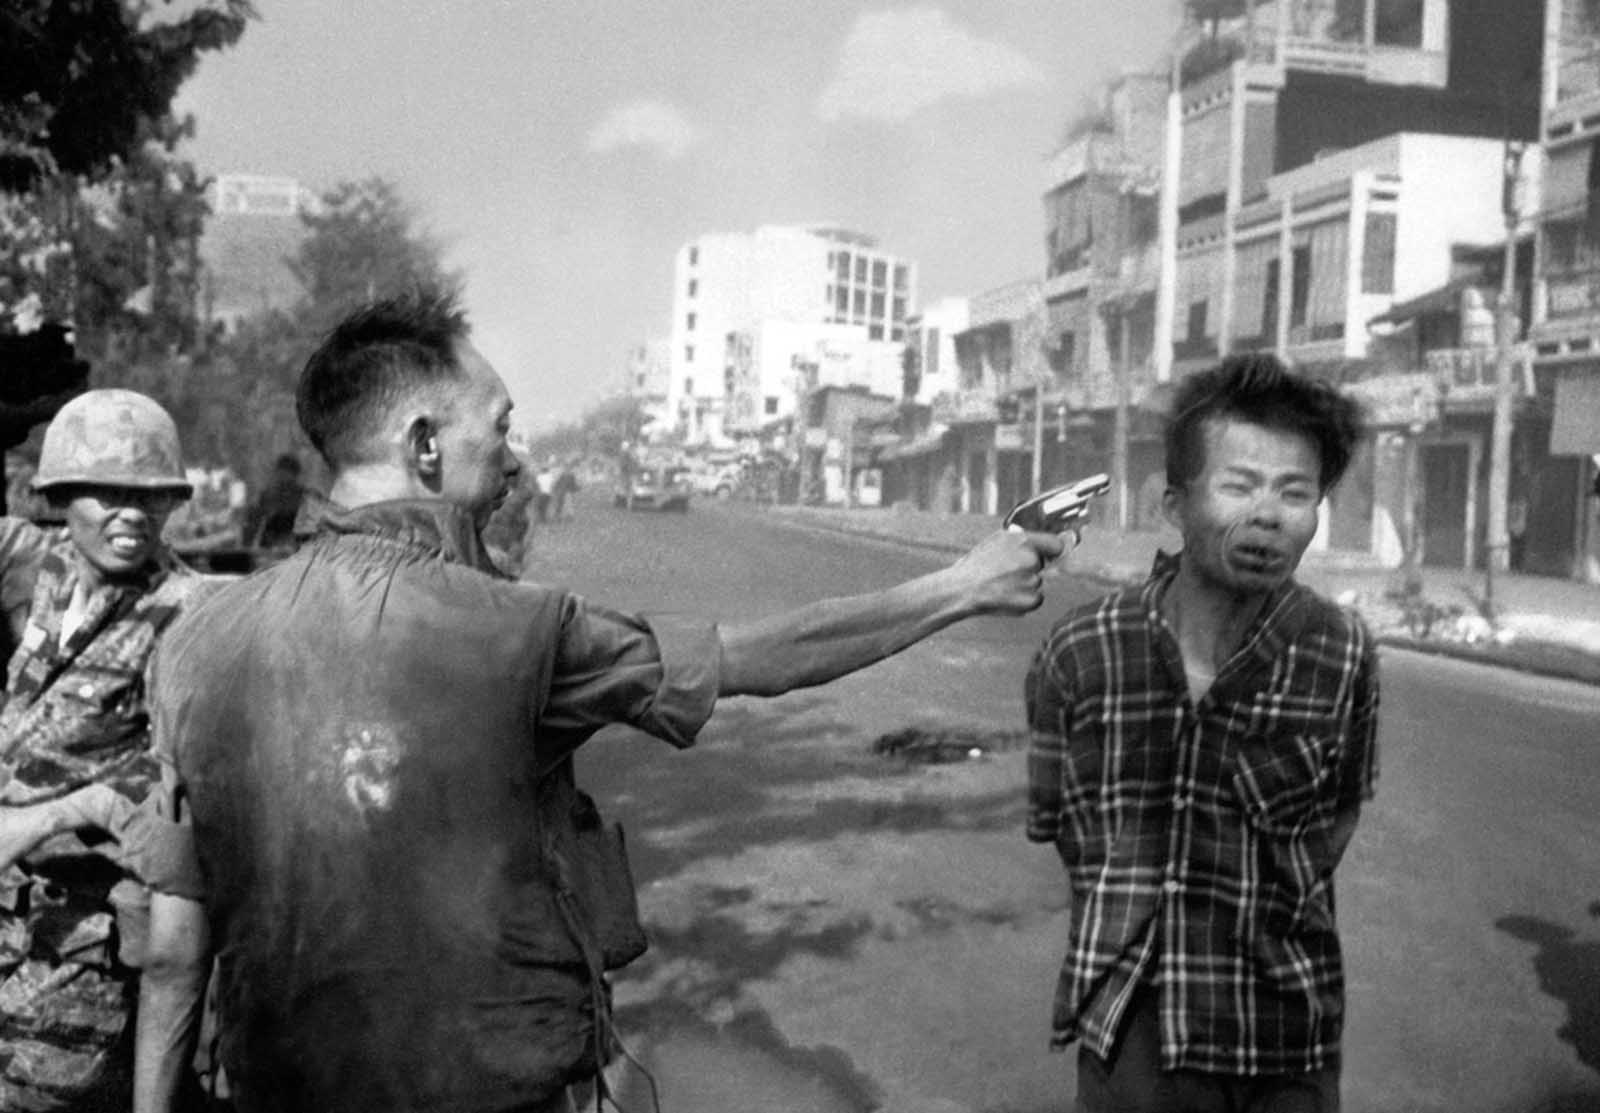 The South Vietnamese General Nguyen Ngoc Loan, chief of the national police, fires his pistol into the head of suspected Viet Cong officer Nguyen Van Lem (also known as Bay Lop) on a Saigon street on February 1, 1968, early in the Tet Offensive. Lem was suspected of commanding a death squad which had targeted South Vietnamese police officers that day. The fame of this photo led to a life of infamy for Nguyen Ngoc Loan, who quietly moved to the United States in 1975, opening a pizza shop in Virginia.